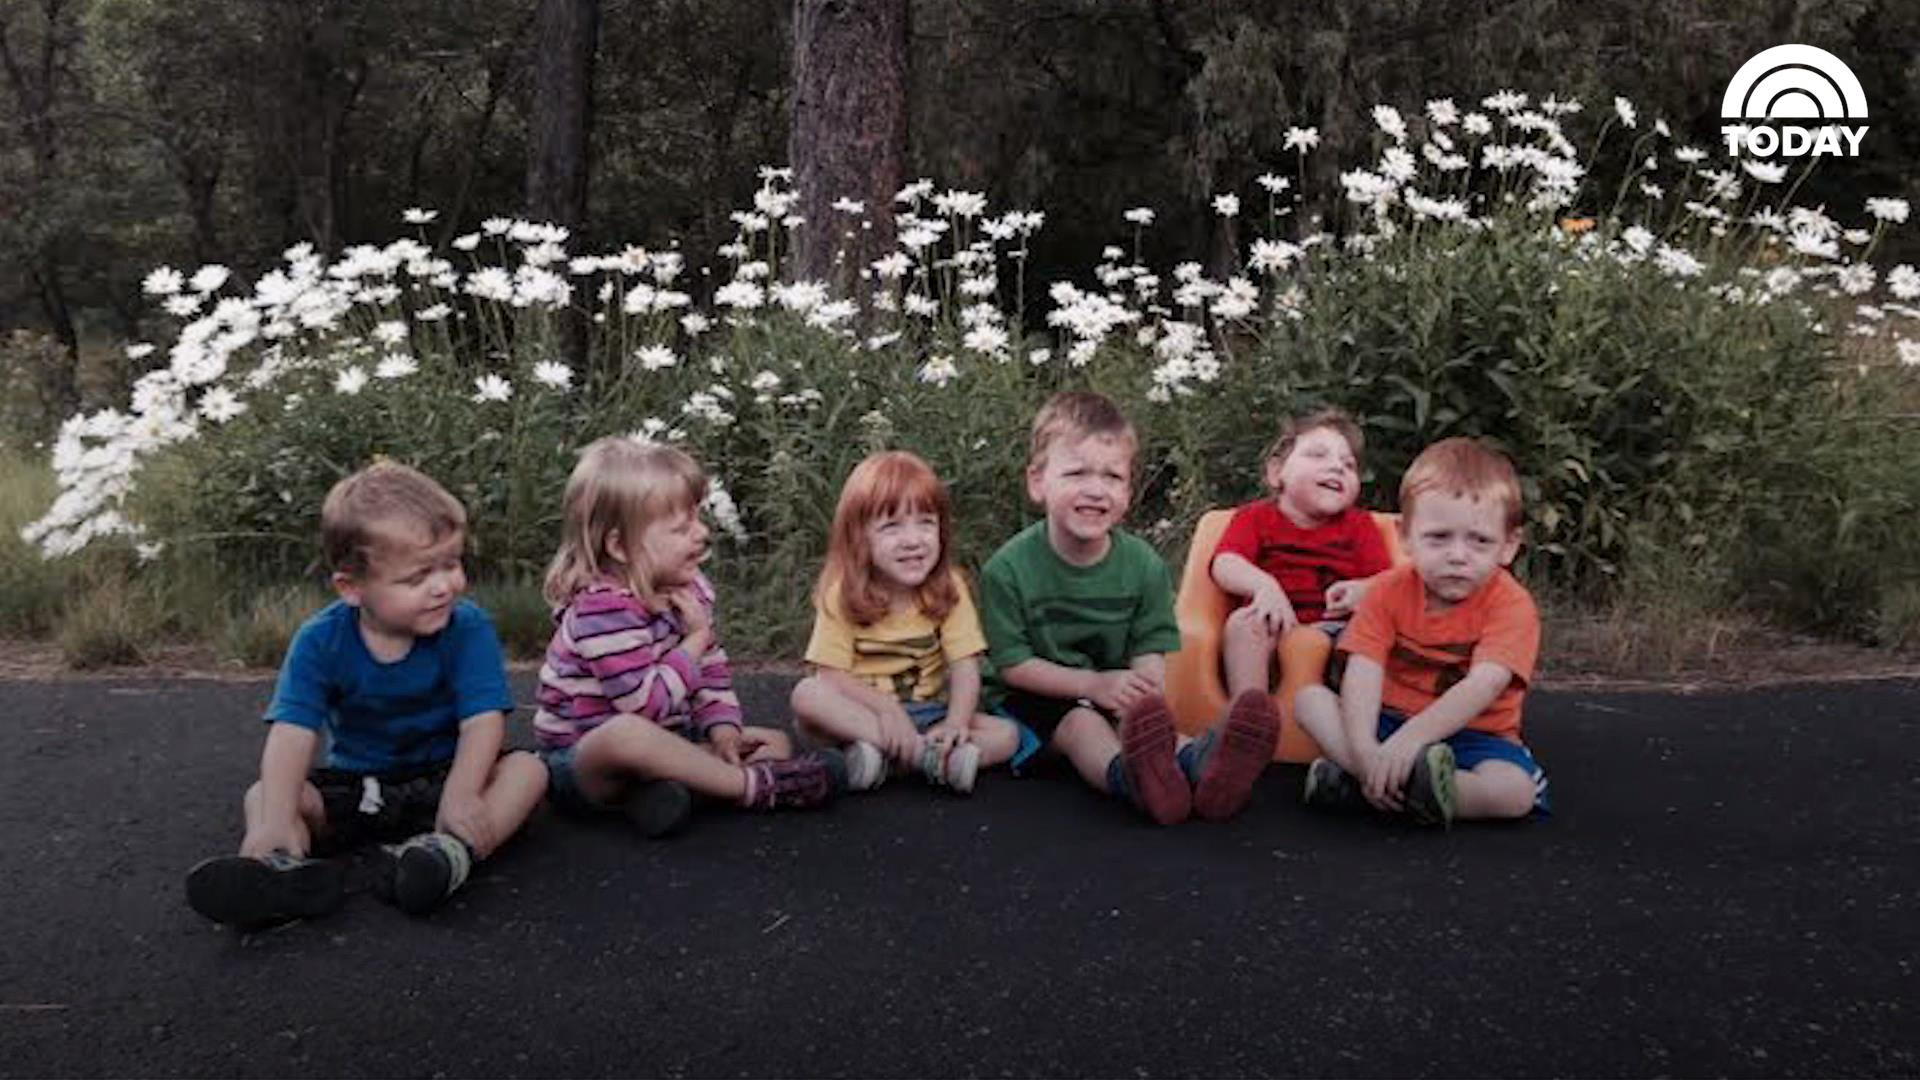 texas sextuplets turn 5 years old